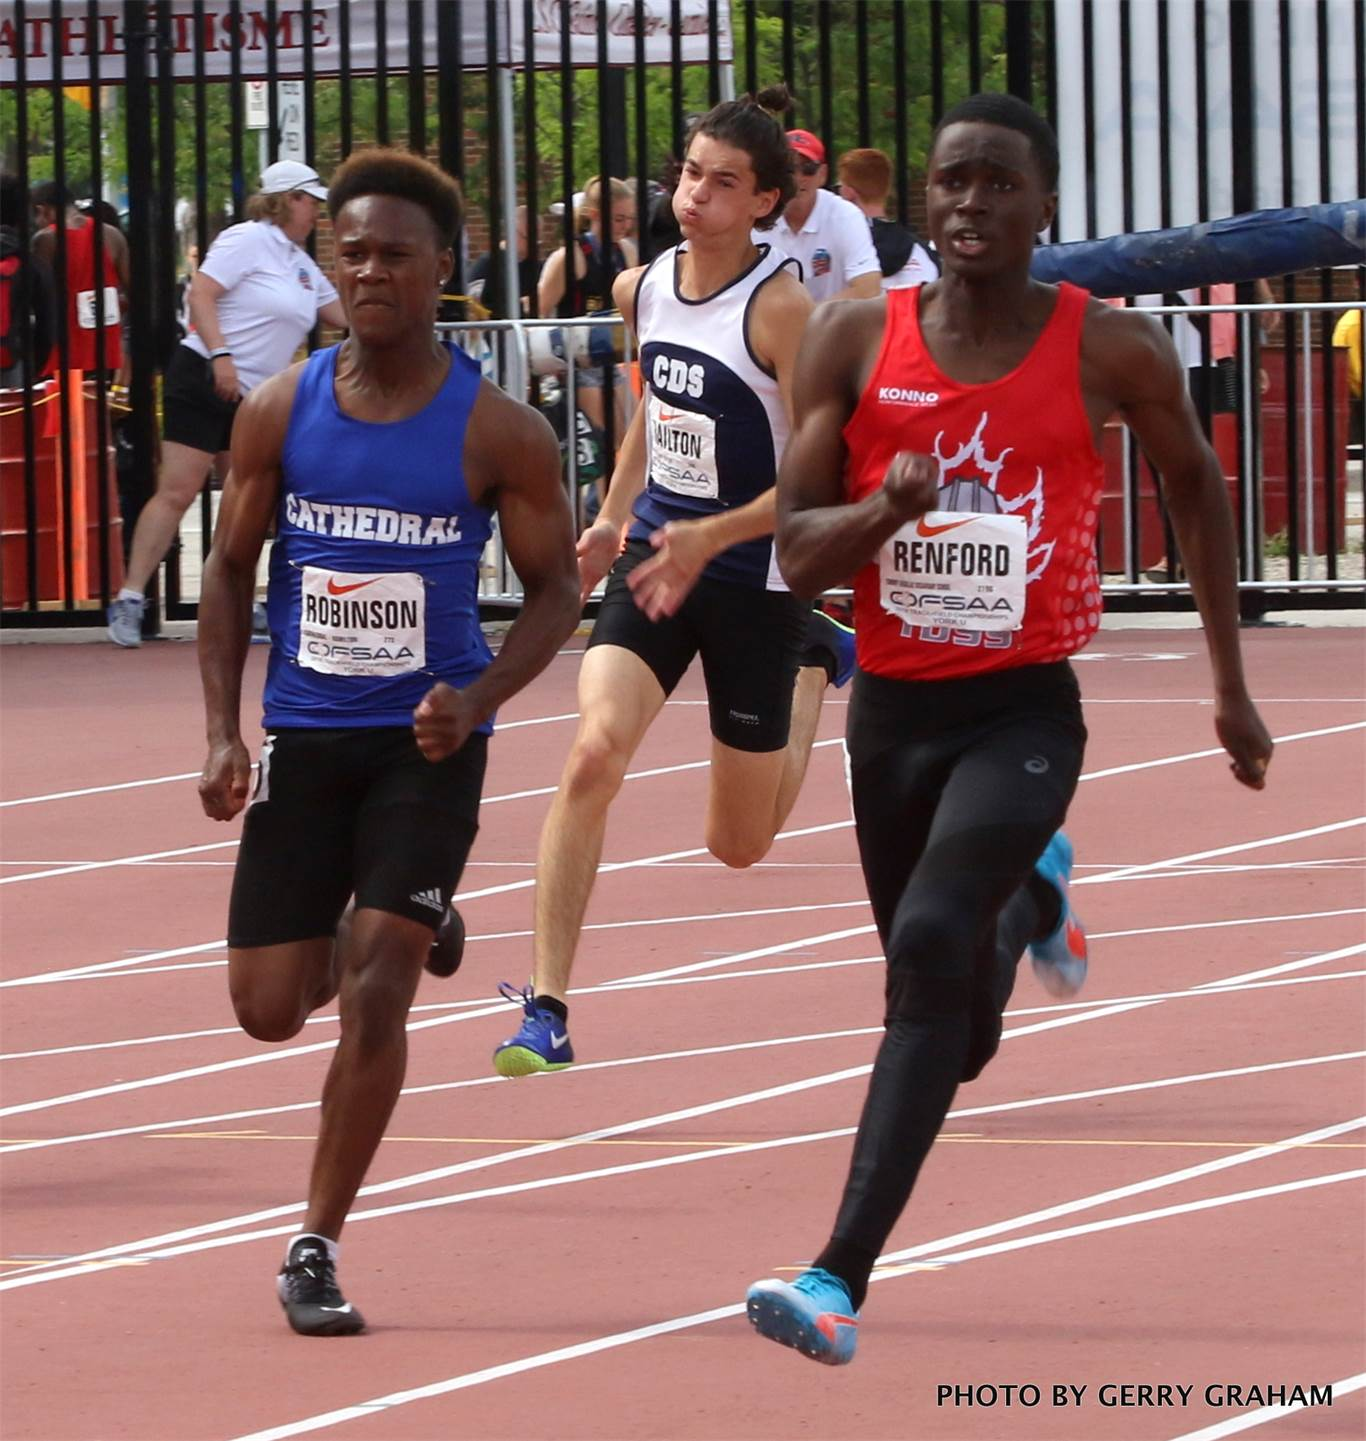 Nifaiya Robinson of the Cathedral Gaels earned a silver medal in the junior boys' 200m. His time Saturday was 22.30. The previous day, Robinson also won silver in the 400m (49.21). Photo by Gerry Graham.